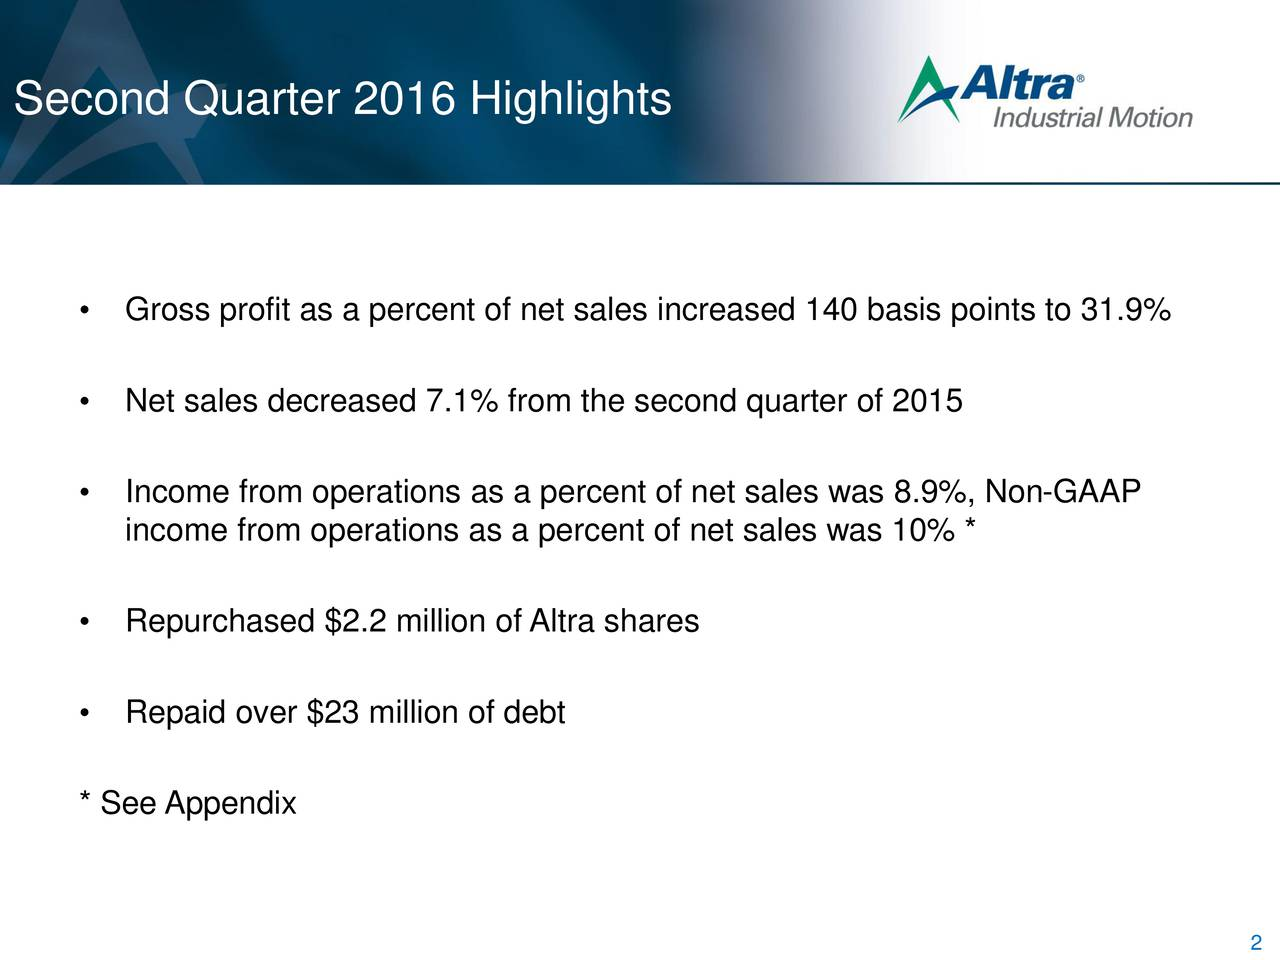 Gross profit as a percent of net sales increased 140 basis points to 31.9% Net sales decreased 7.1% from the second quarter of 2015 Income from operations as a percent of net sales was 8.9%, Non-GAAP income from operations as a percent of net sales was 10% * Repurchased $2.2 million of Altra shares Repaid over $23 million of debt * See Appendix